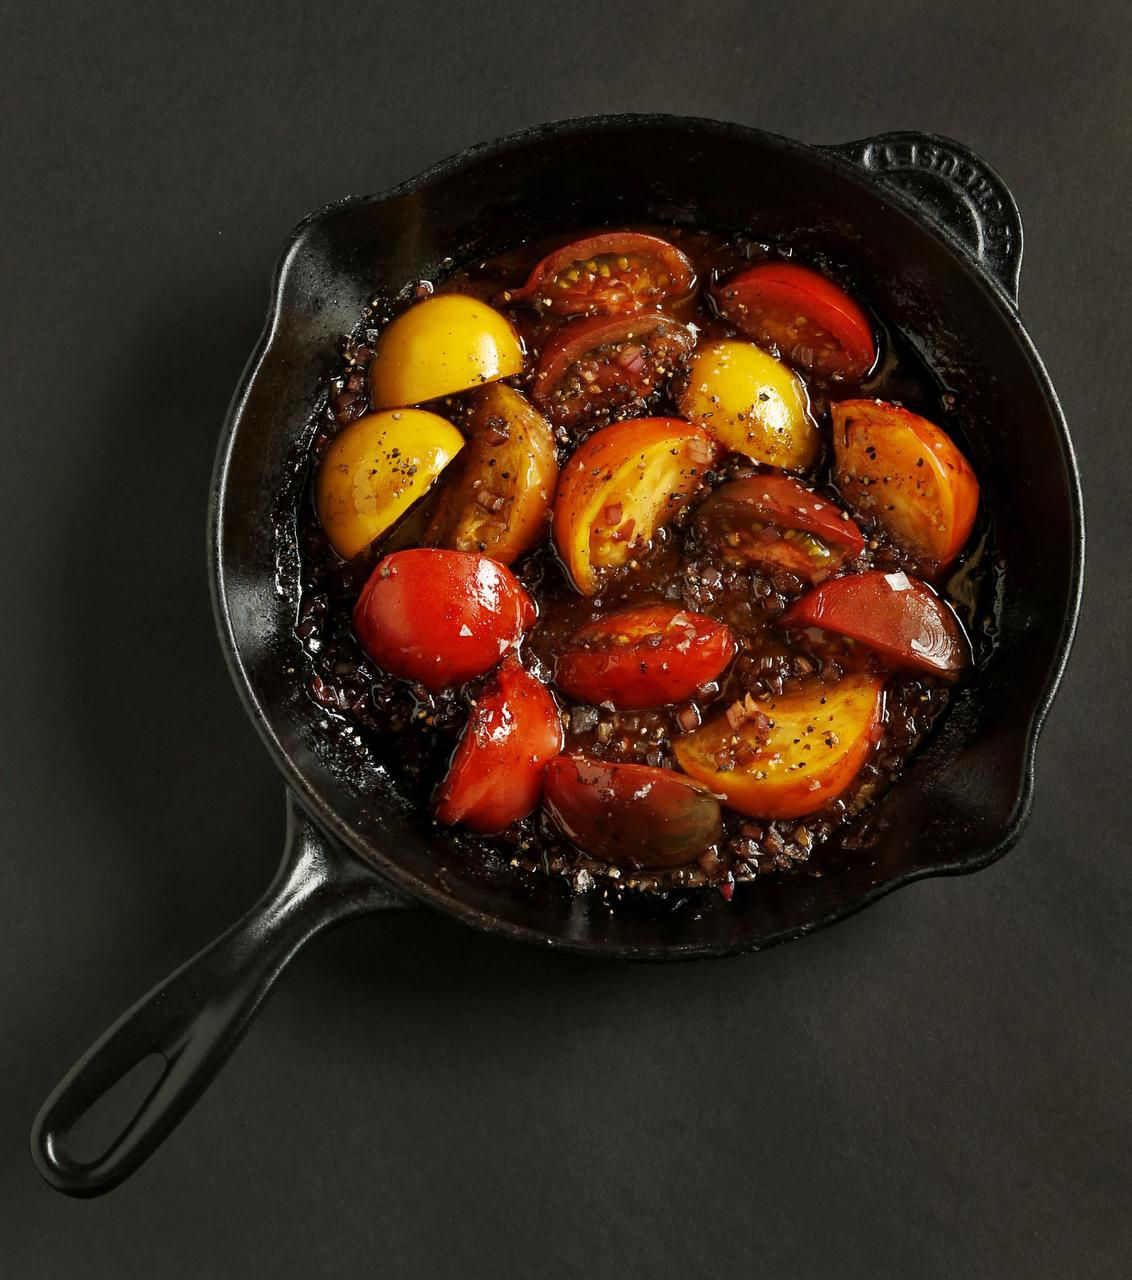 Glaze fresh tomatoes  with a splash of balsamic vinegar and butter for a simple but elegant presentation.